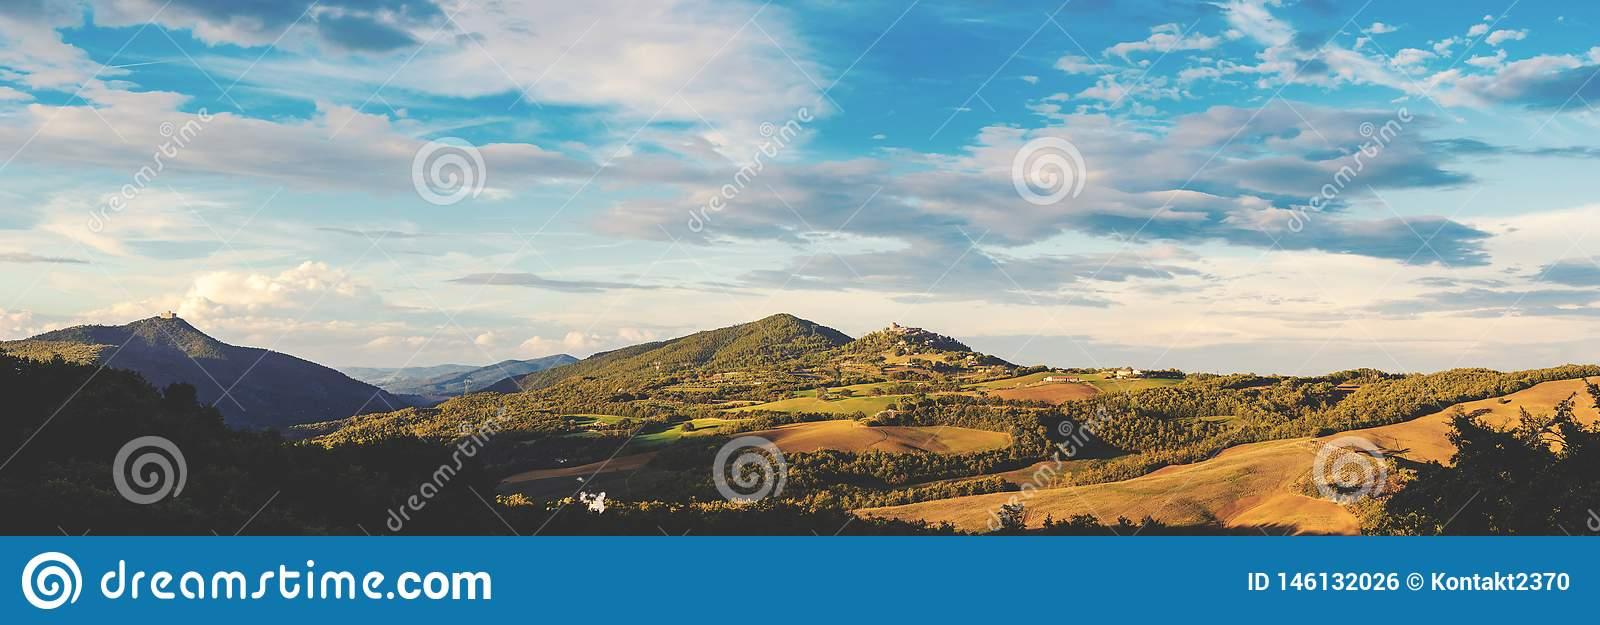 Panorama of tuscany in warm evening light